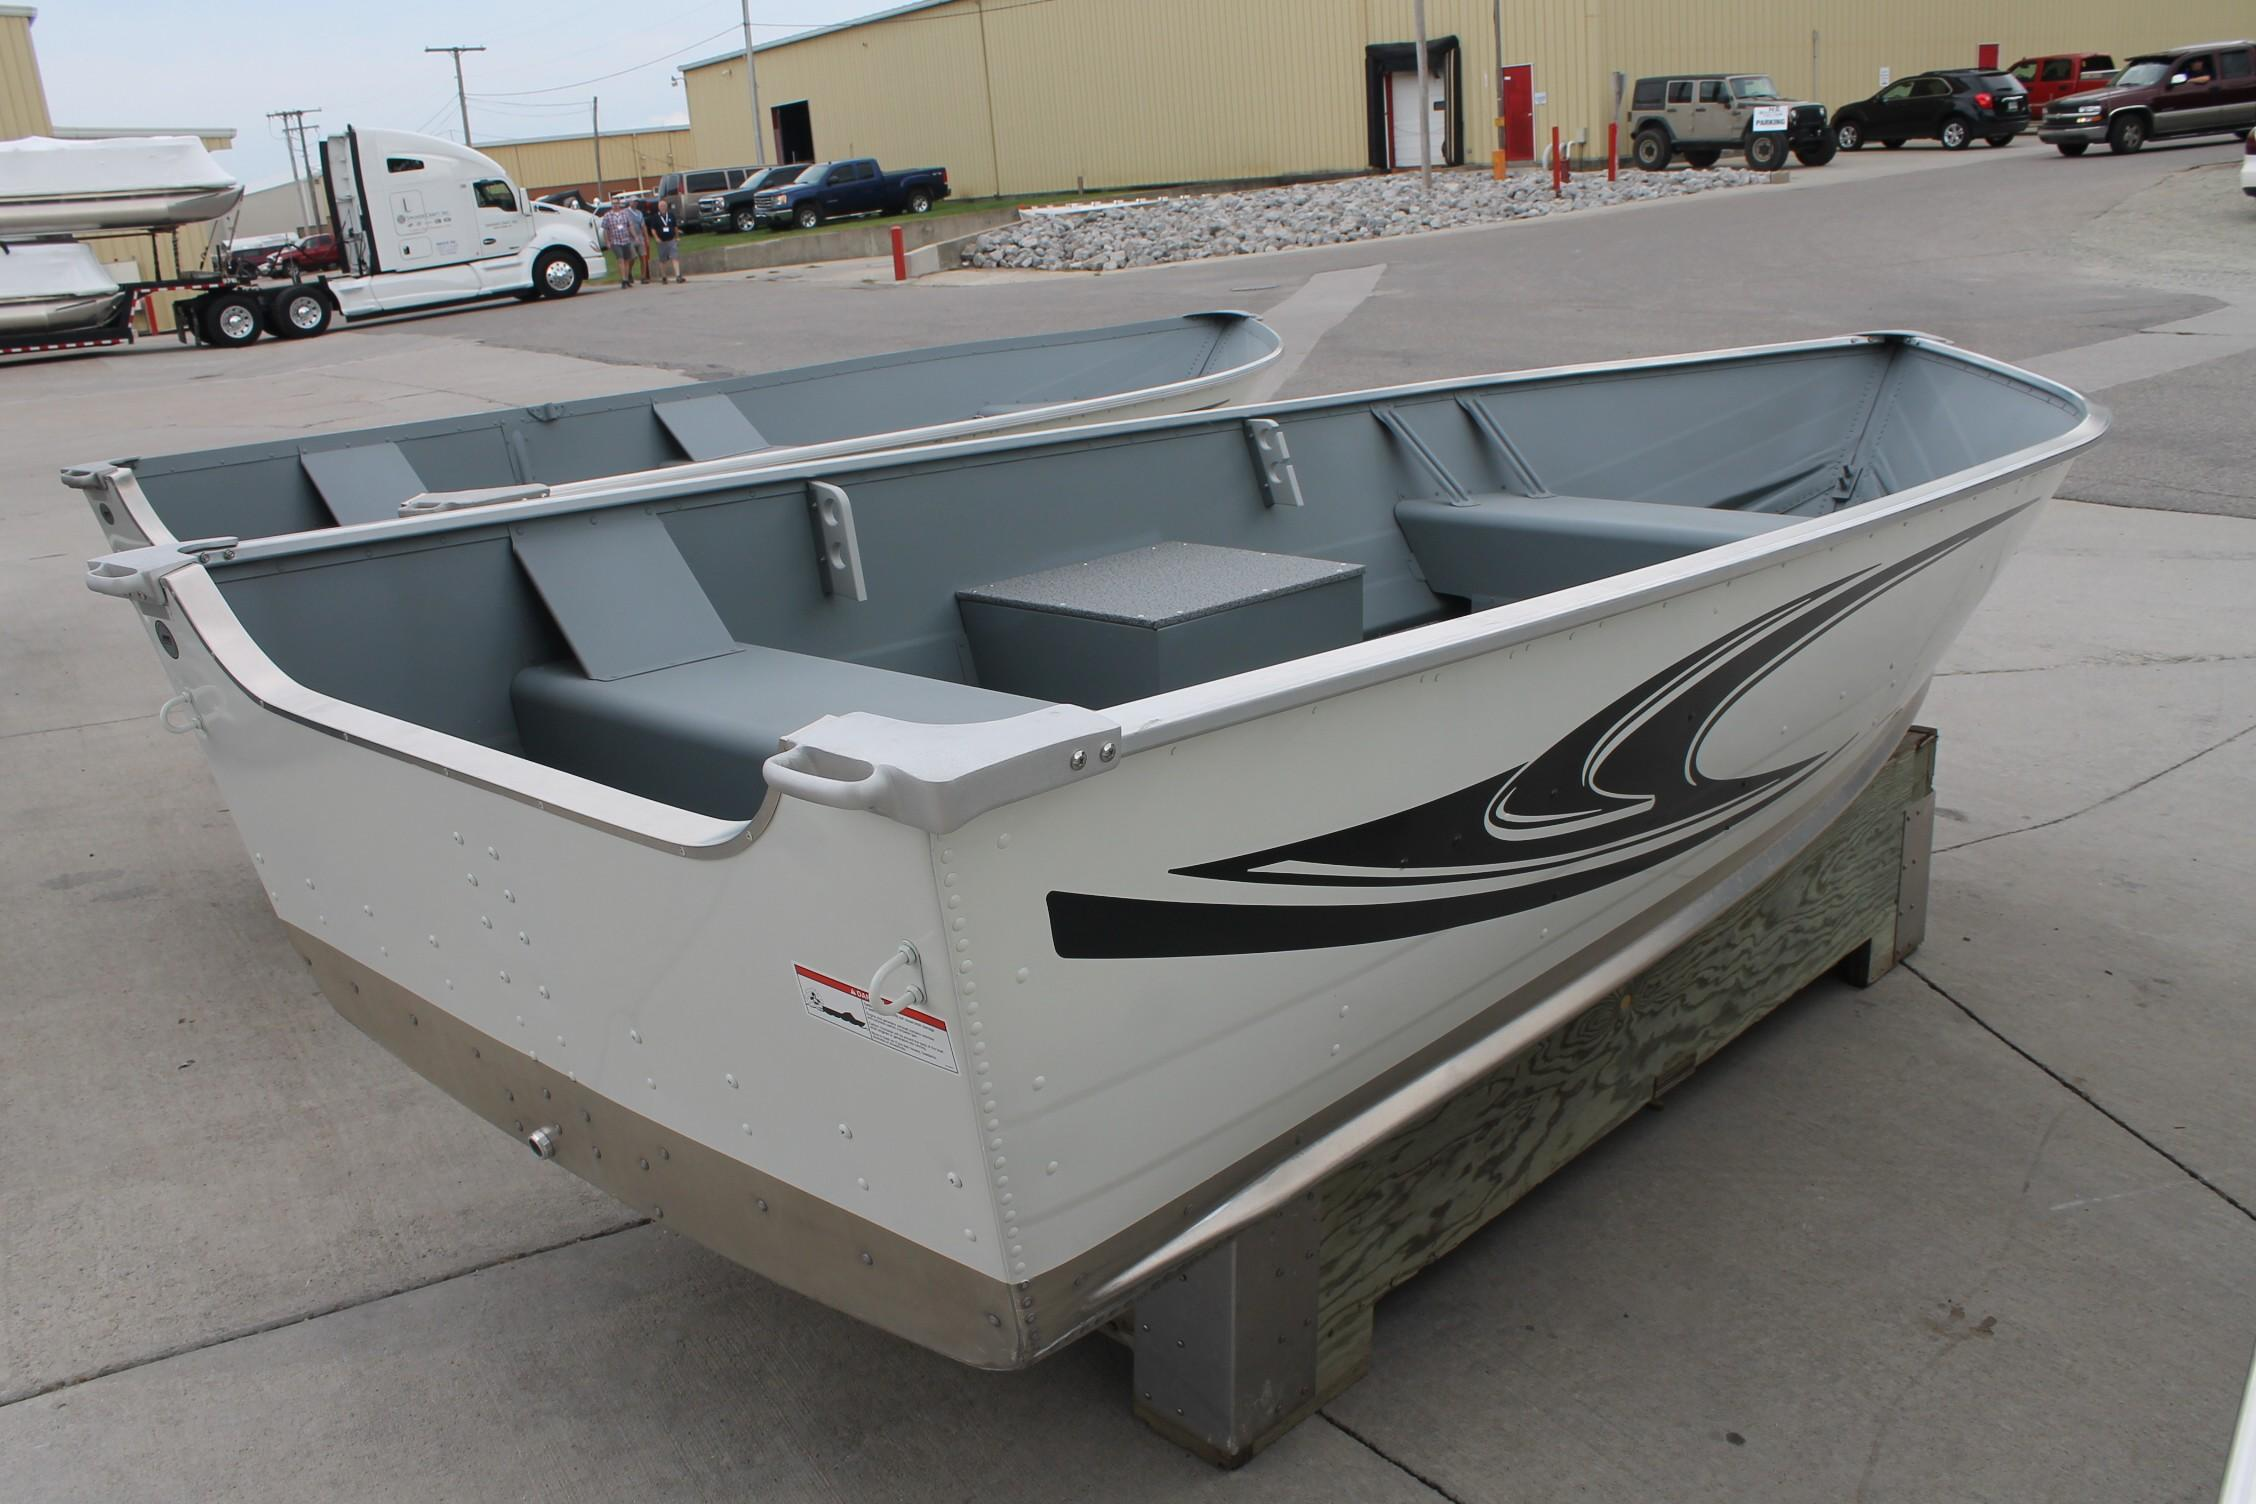 2019 Smoker Craft boat for sale, model of the boat is 13 Alaskan DLX & Image # 18 of 18